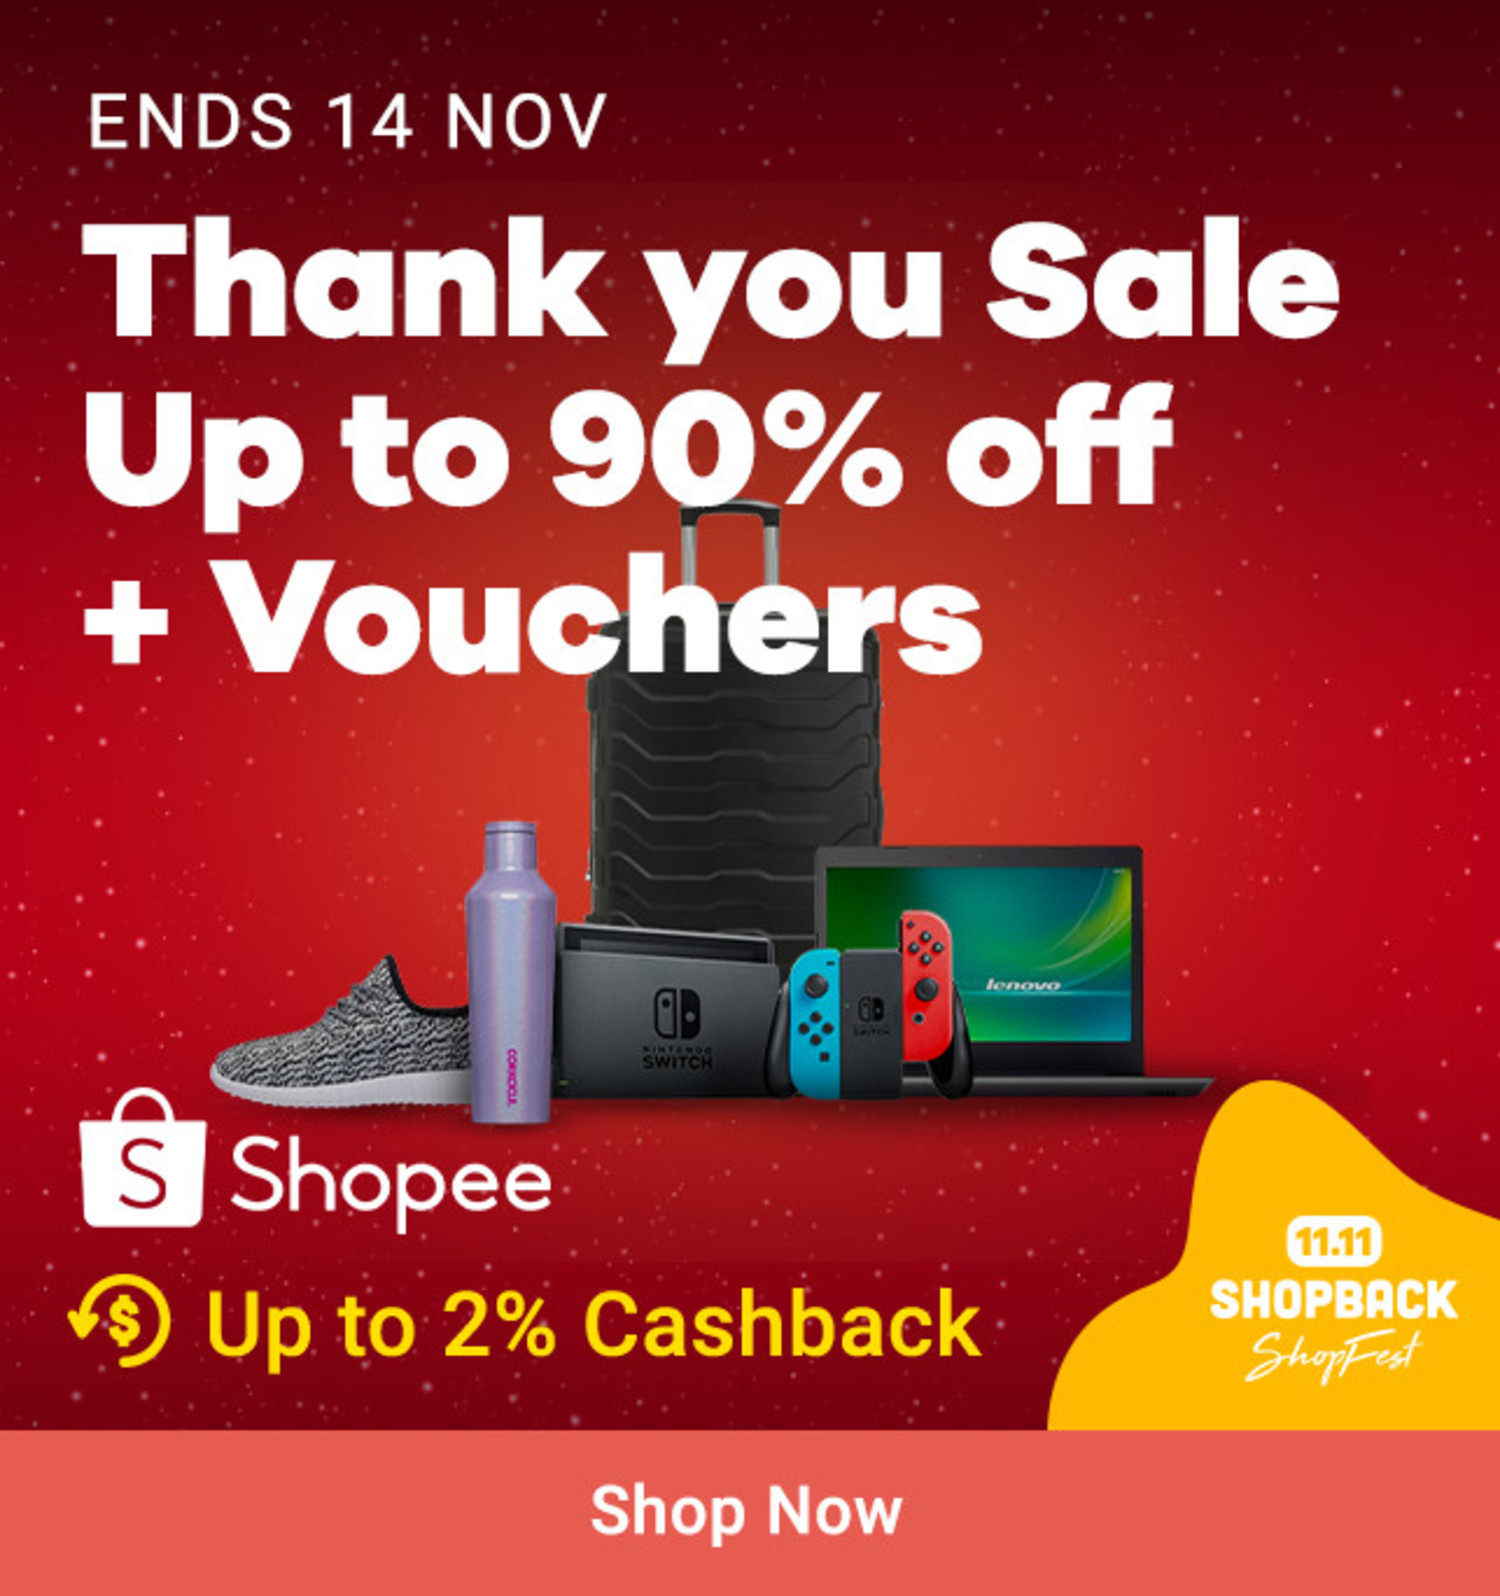 Shopee: Thank You Sale Up to 90% off + Vouchers